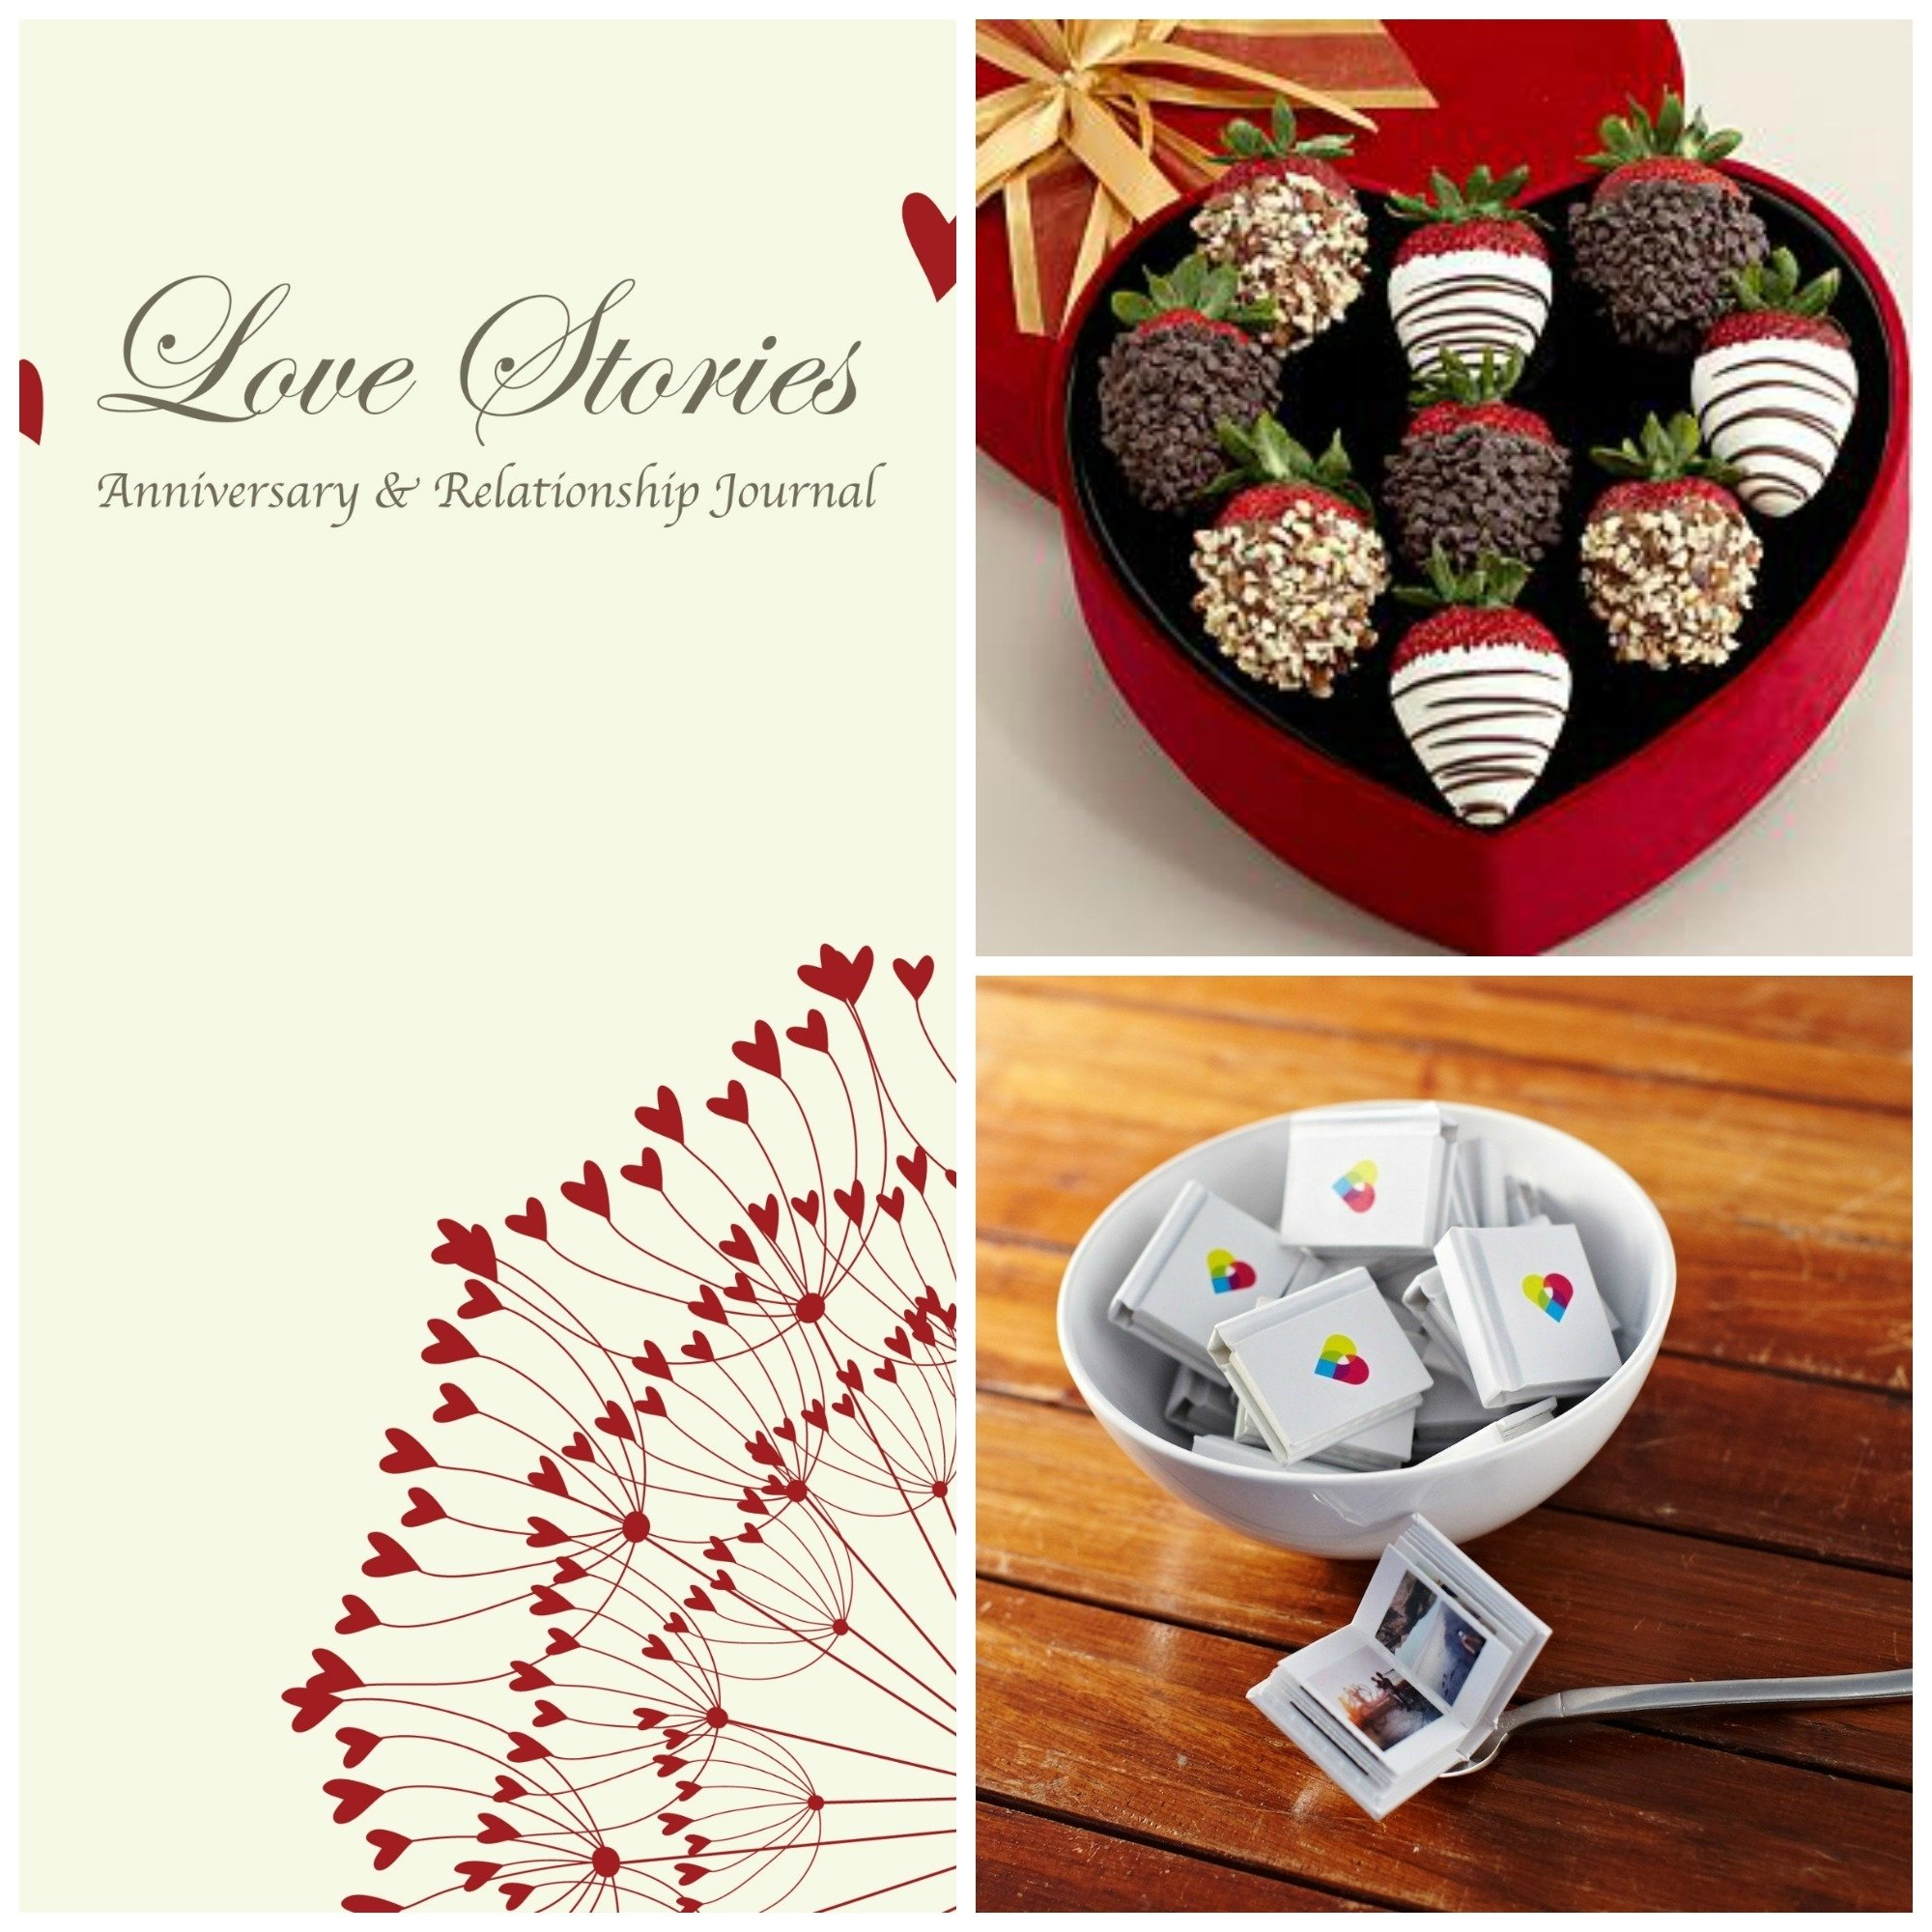 10 Lovable Romantic 1 Year Anniversary Ideas romantic gift ideas for him 5 2020